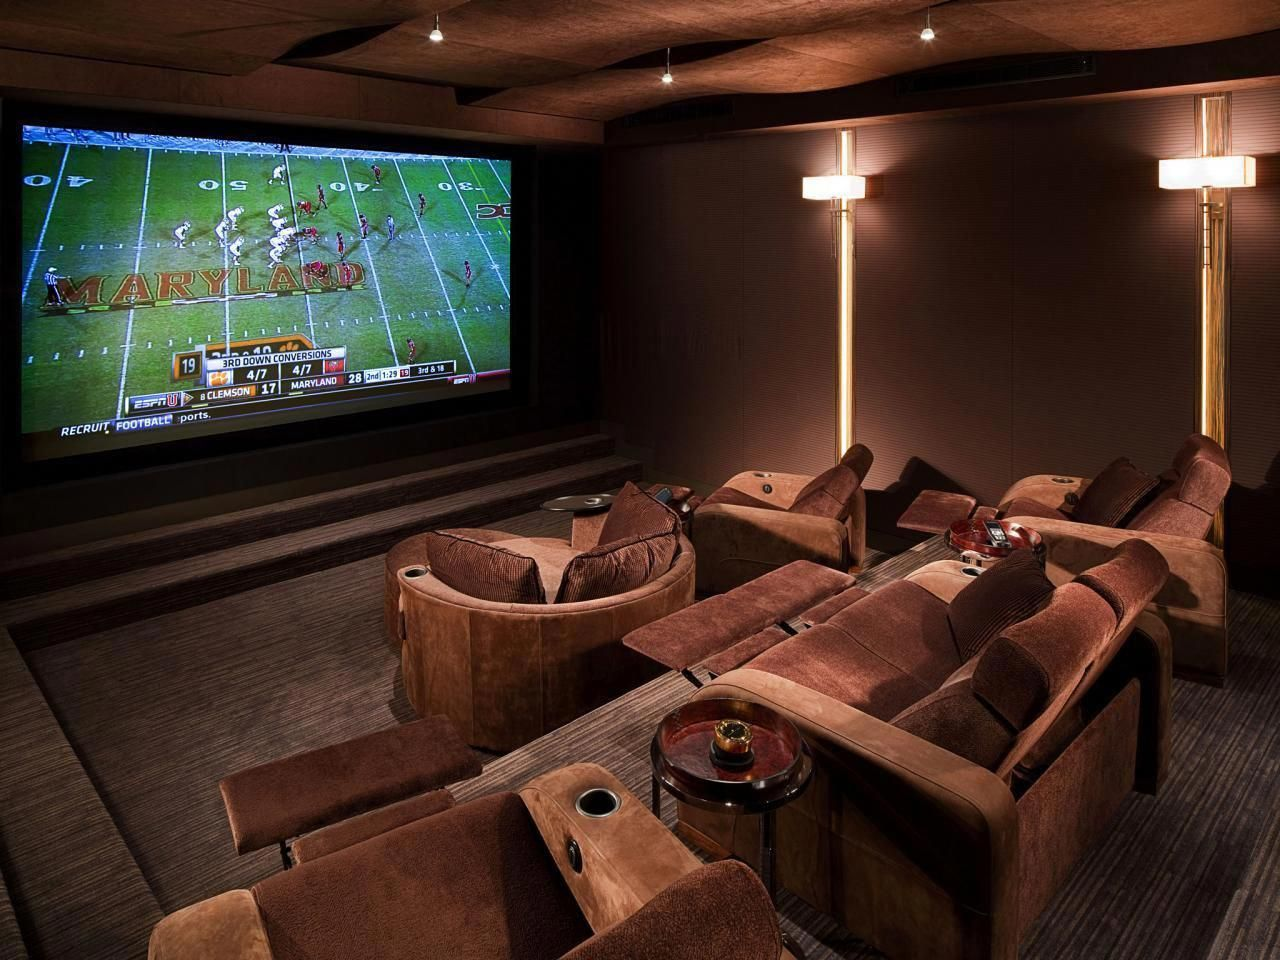 Home theater designs from cedia finalists remodeling ideas for basements theaters  more hgtv hometheaterhacks also rh pinterest